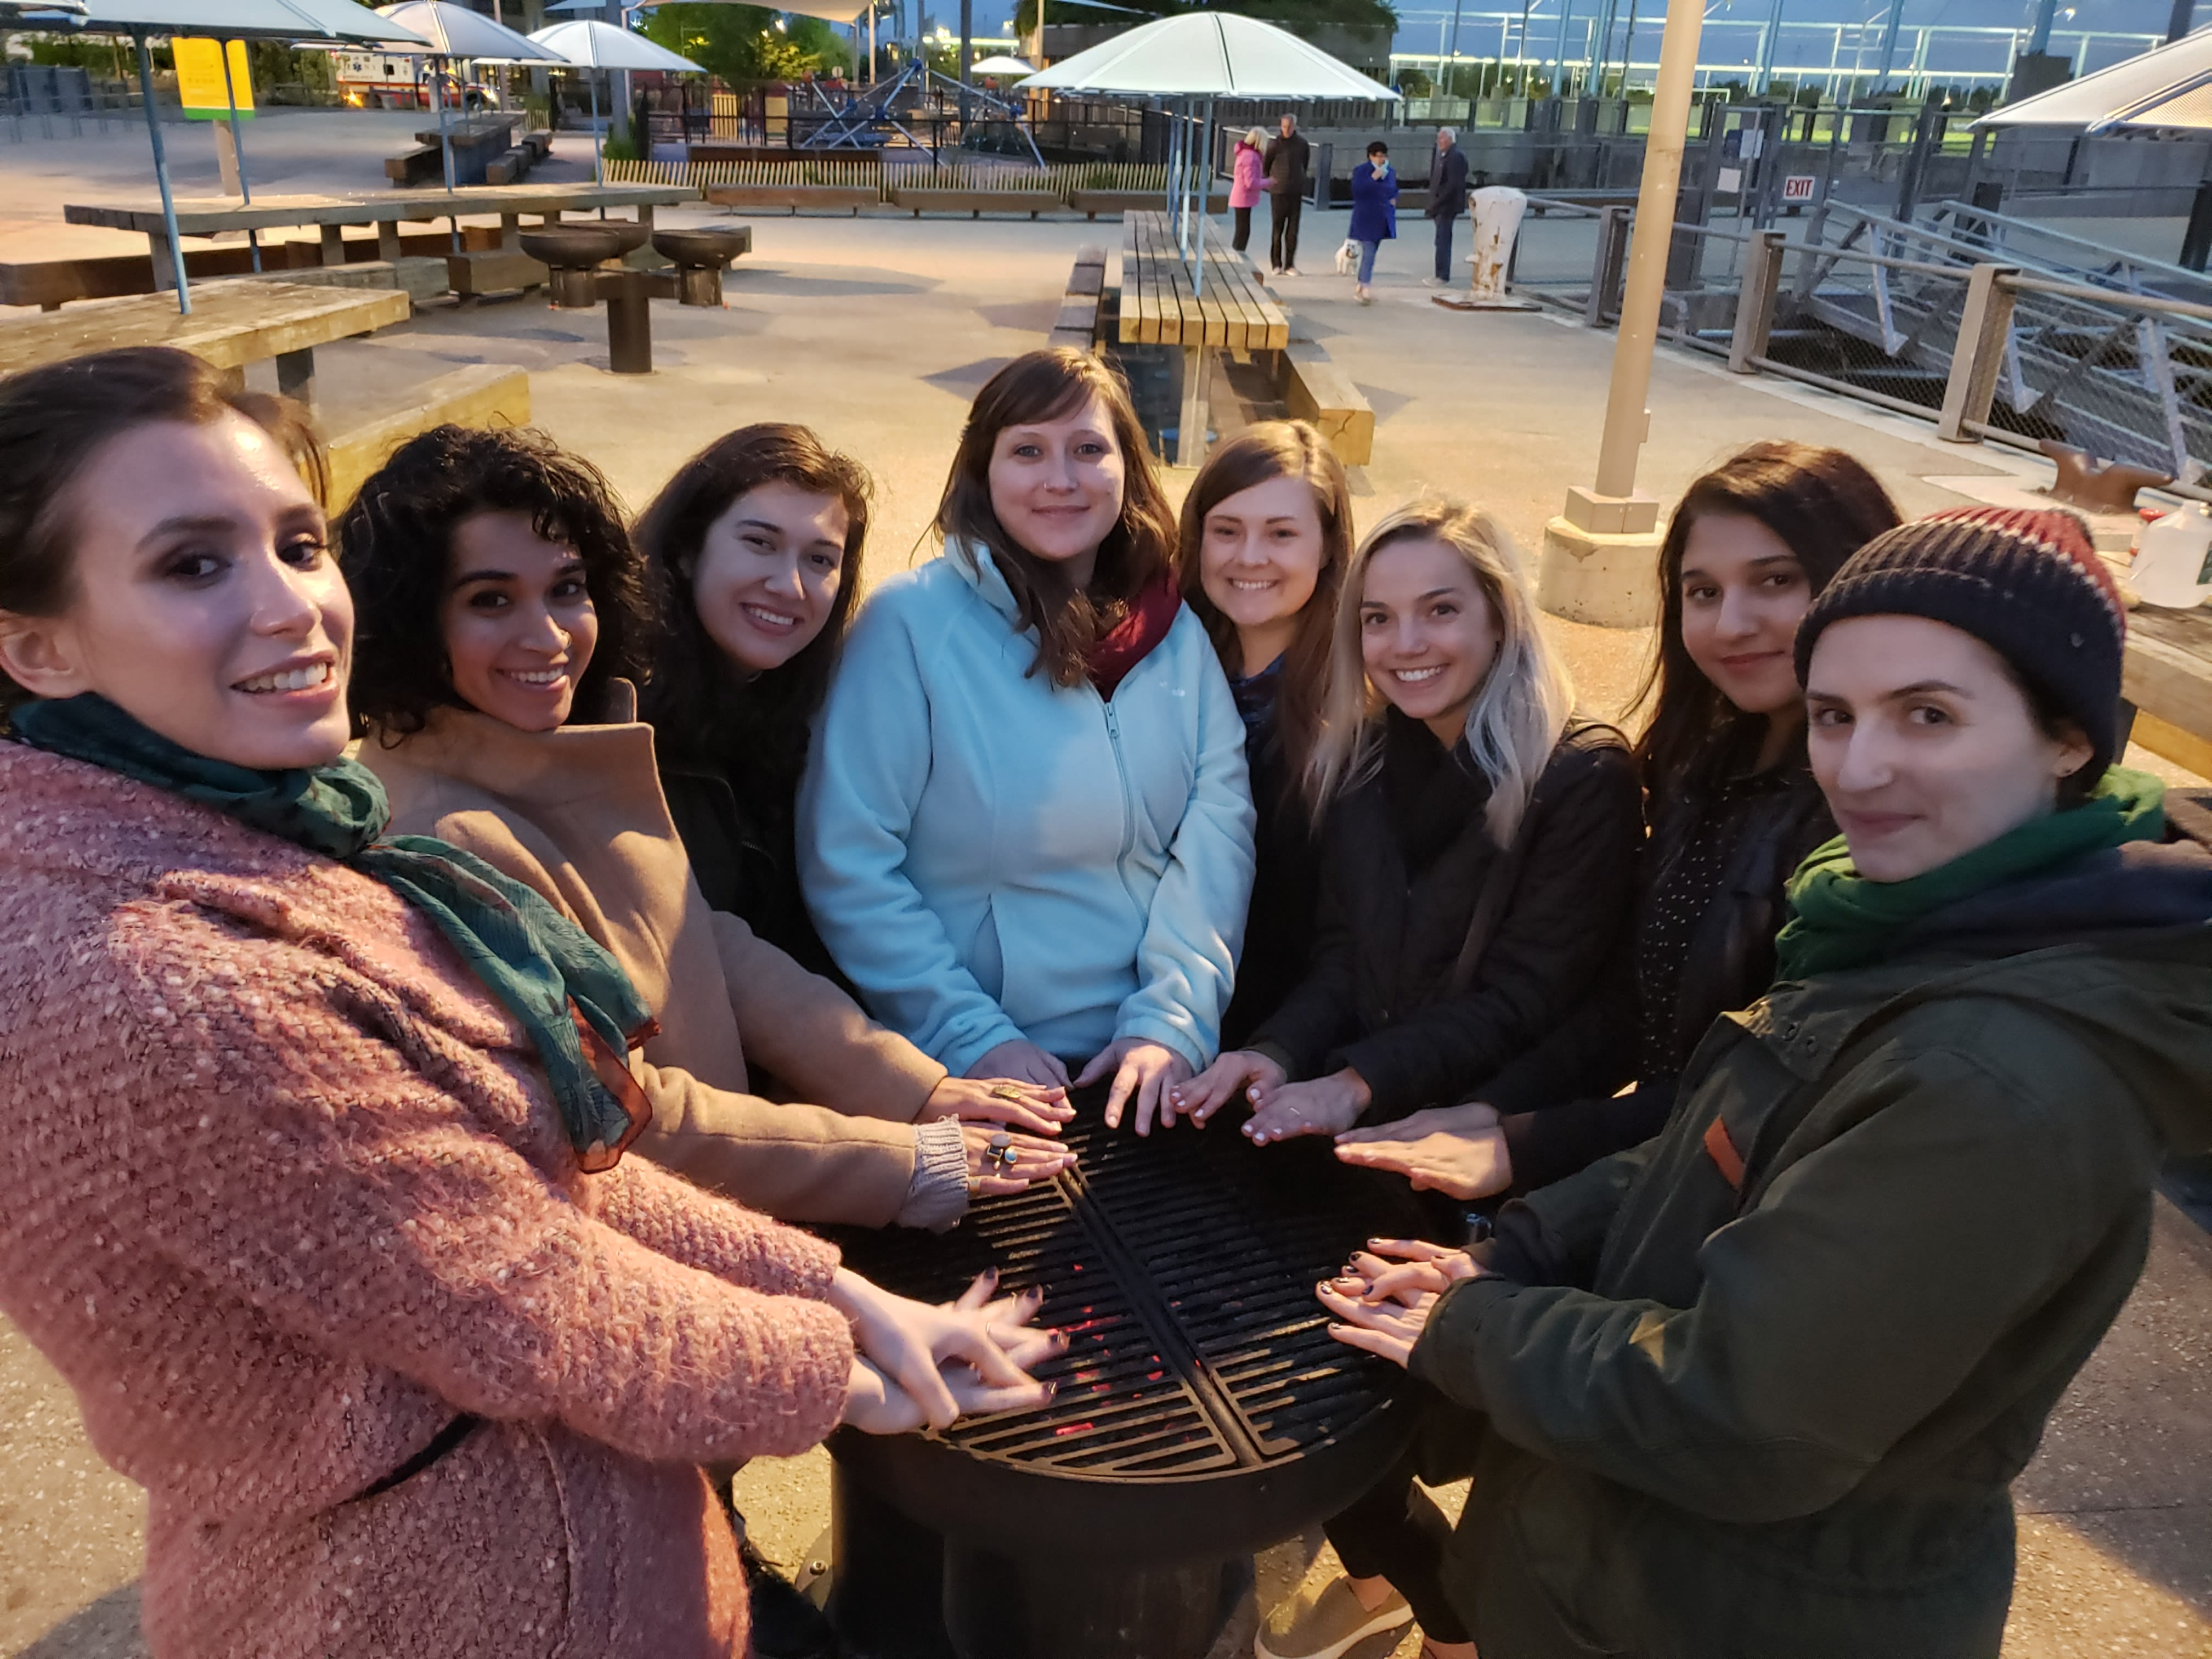 Students posing around fire smiling